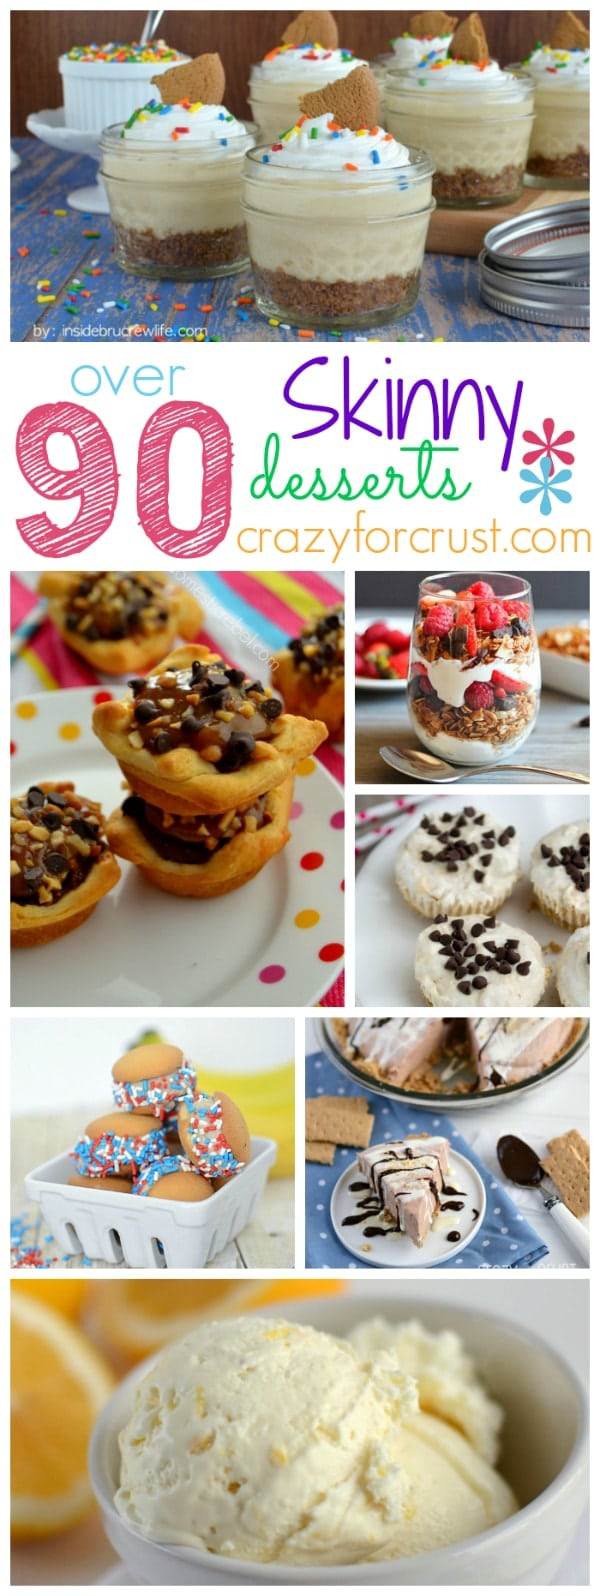 Over 90 Skinny Desserts at www.crazyforcrust.com